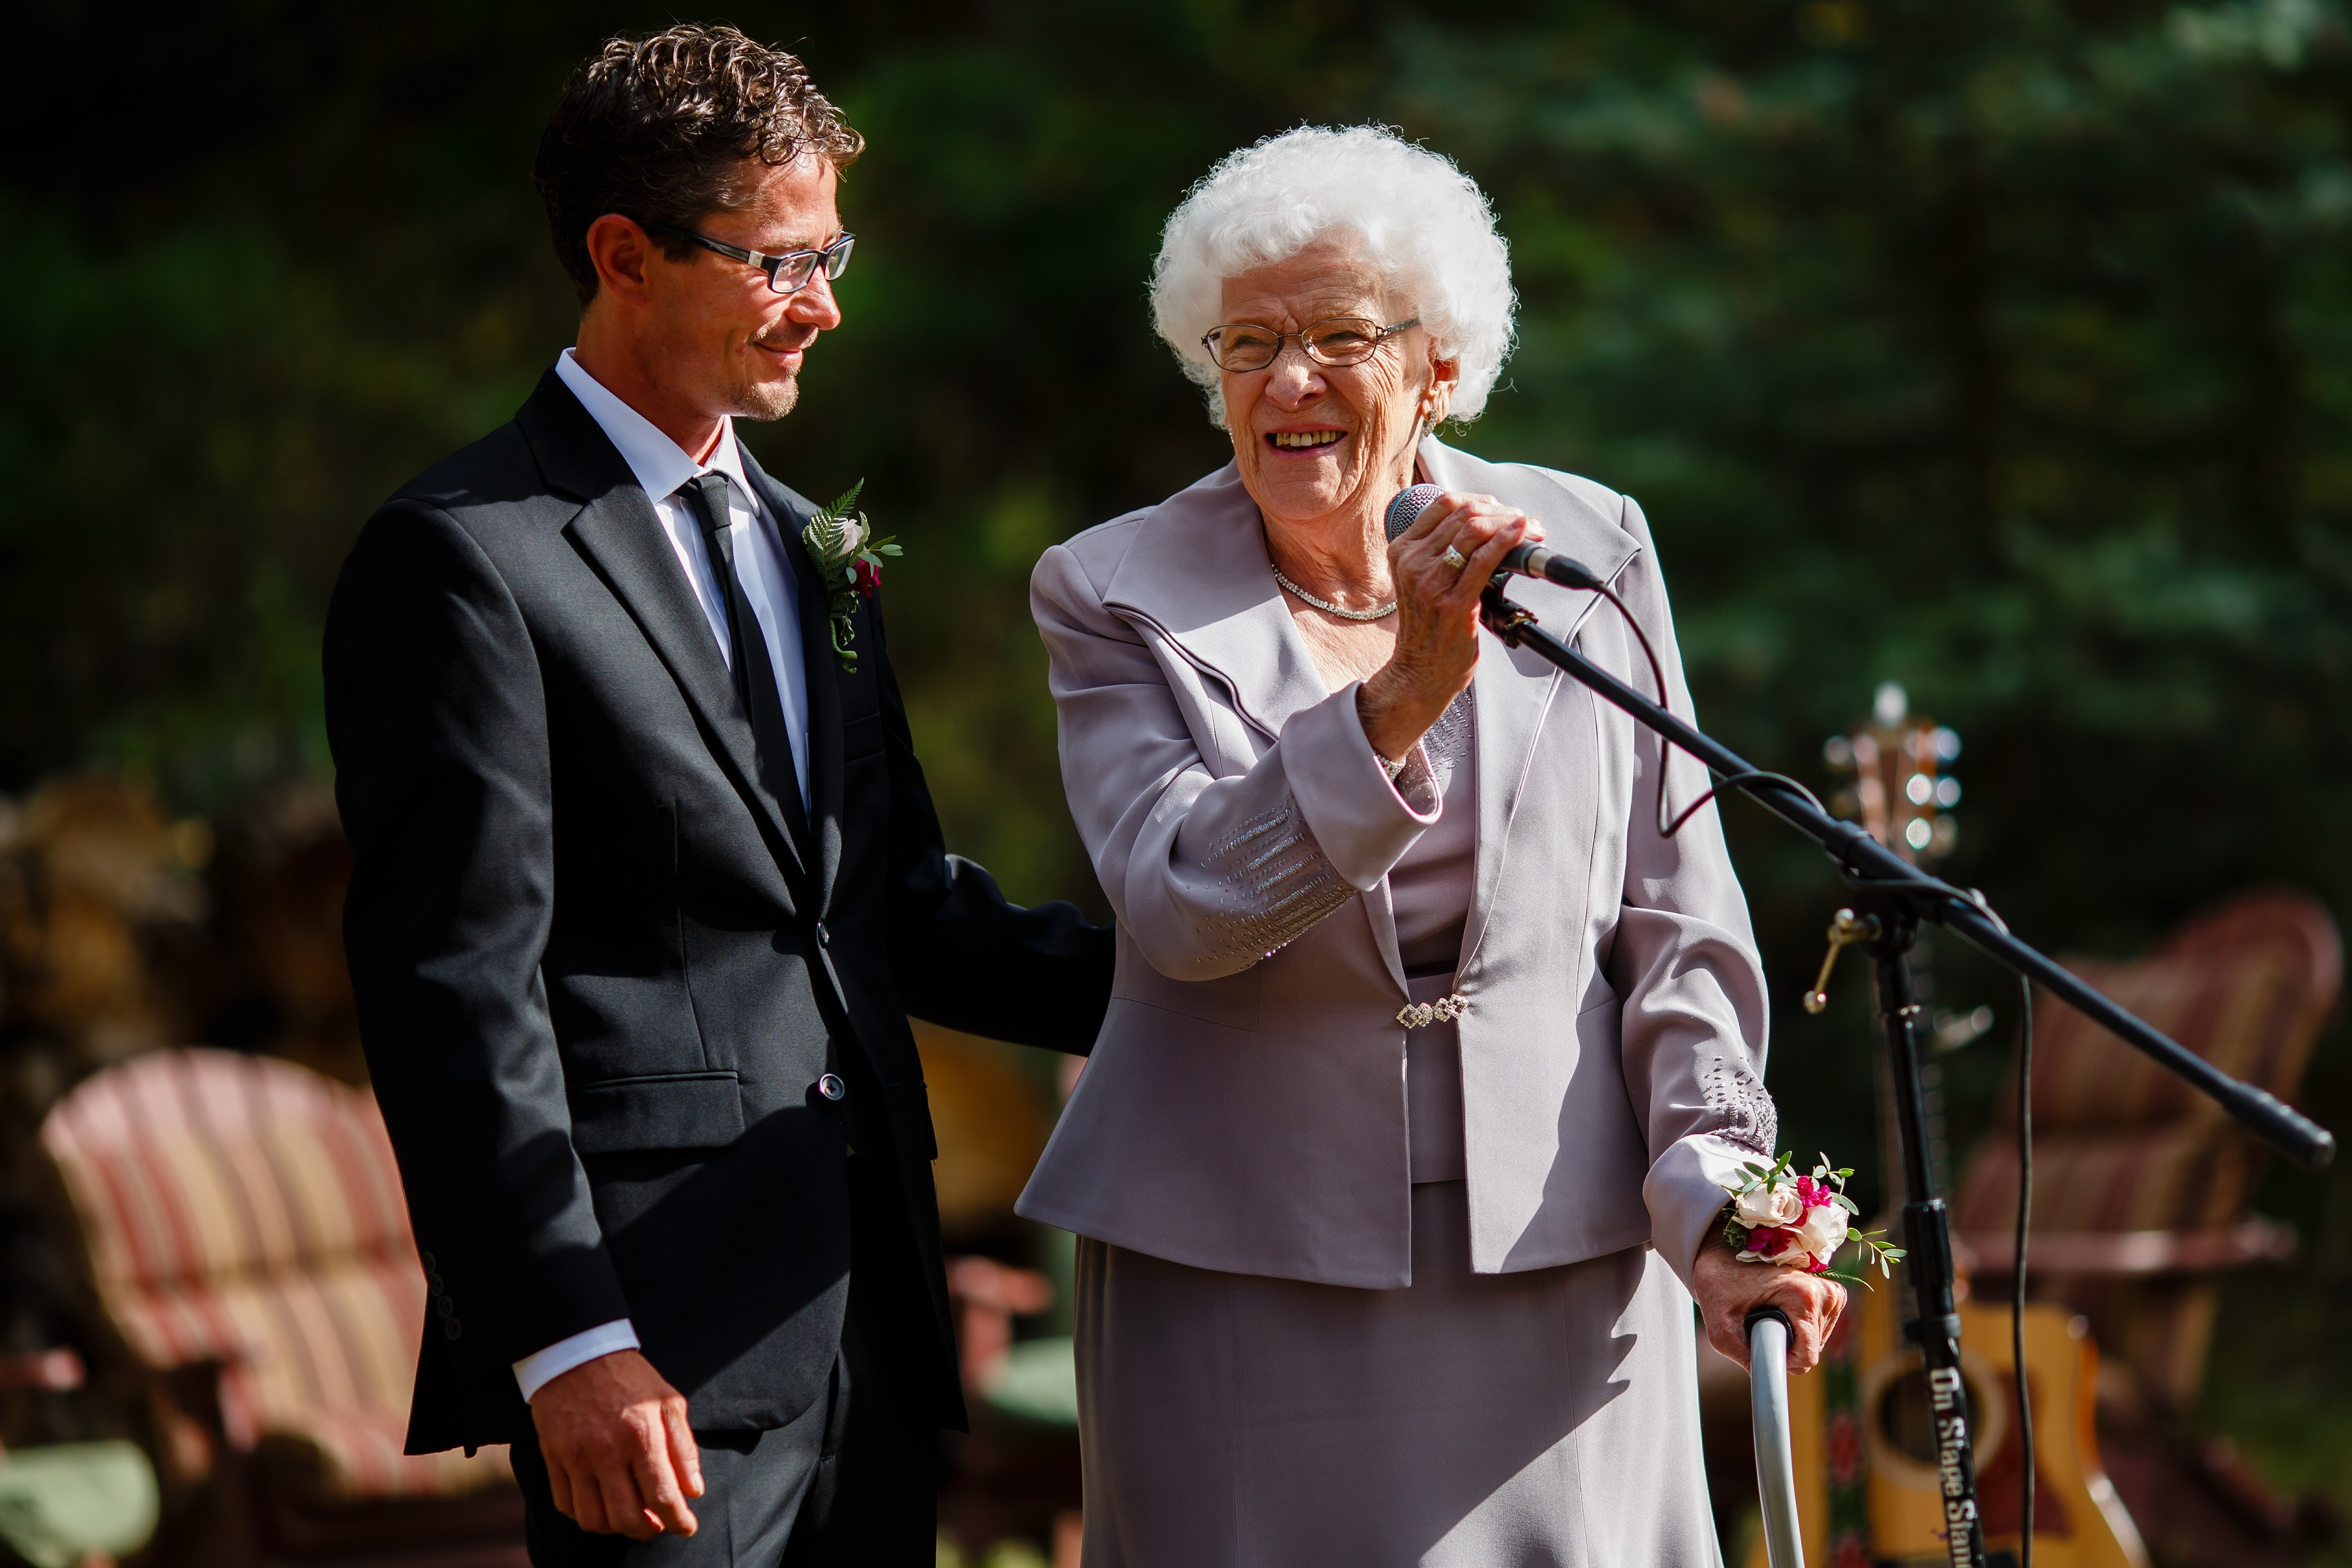 The grandmother speeks during the ceremony